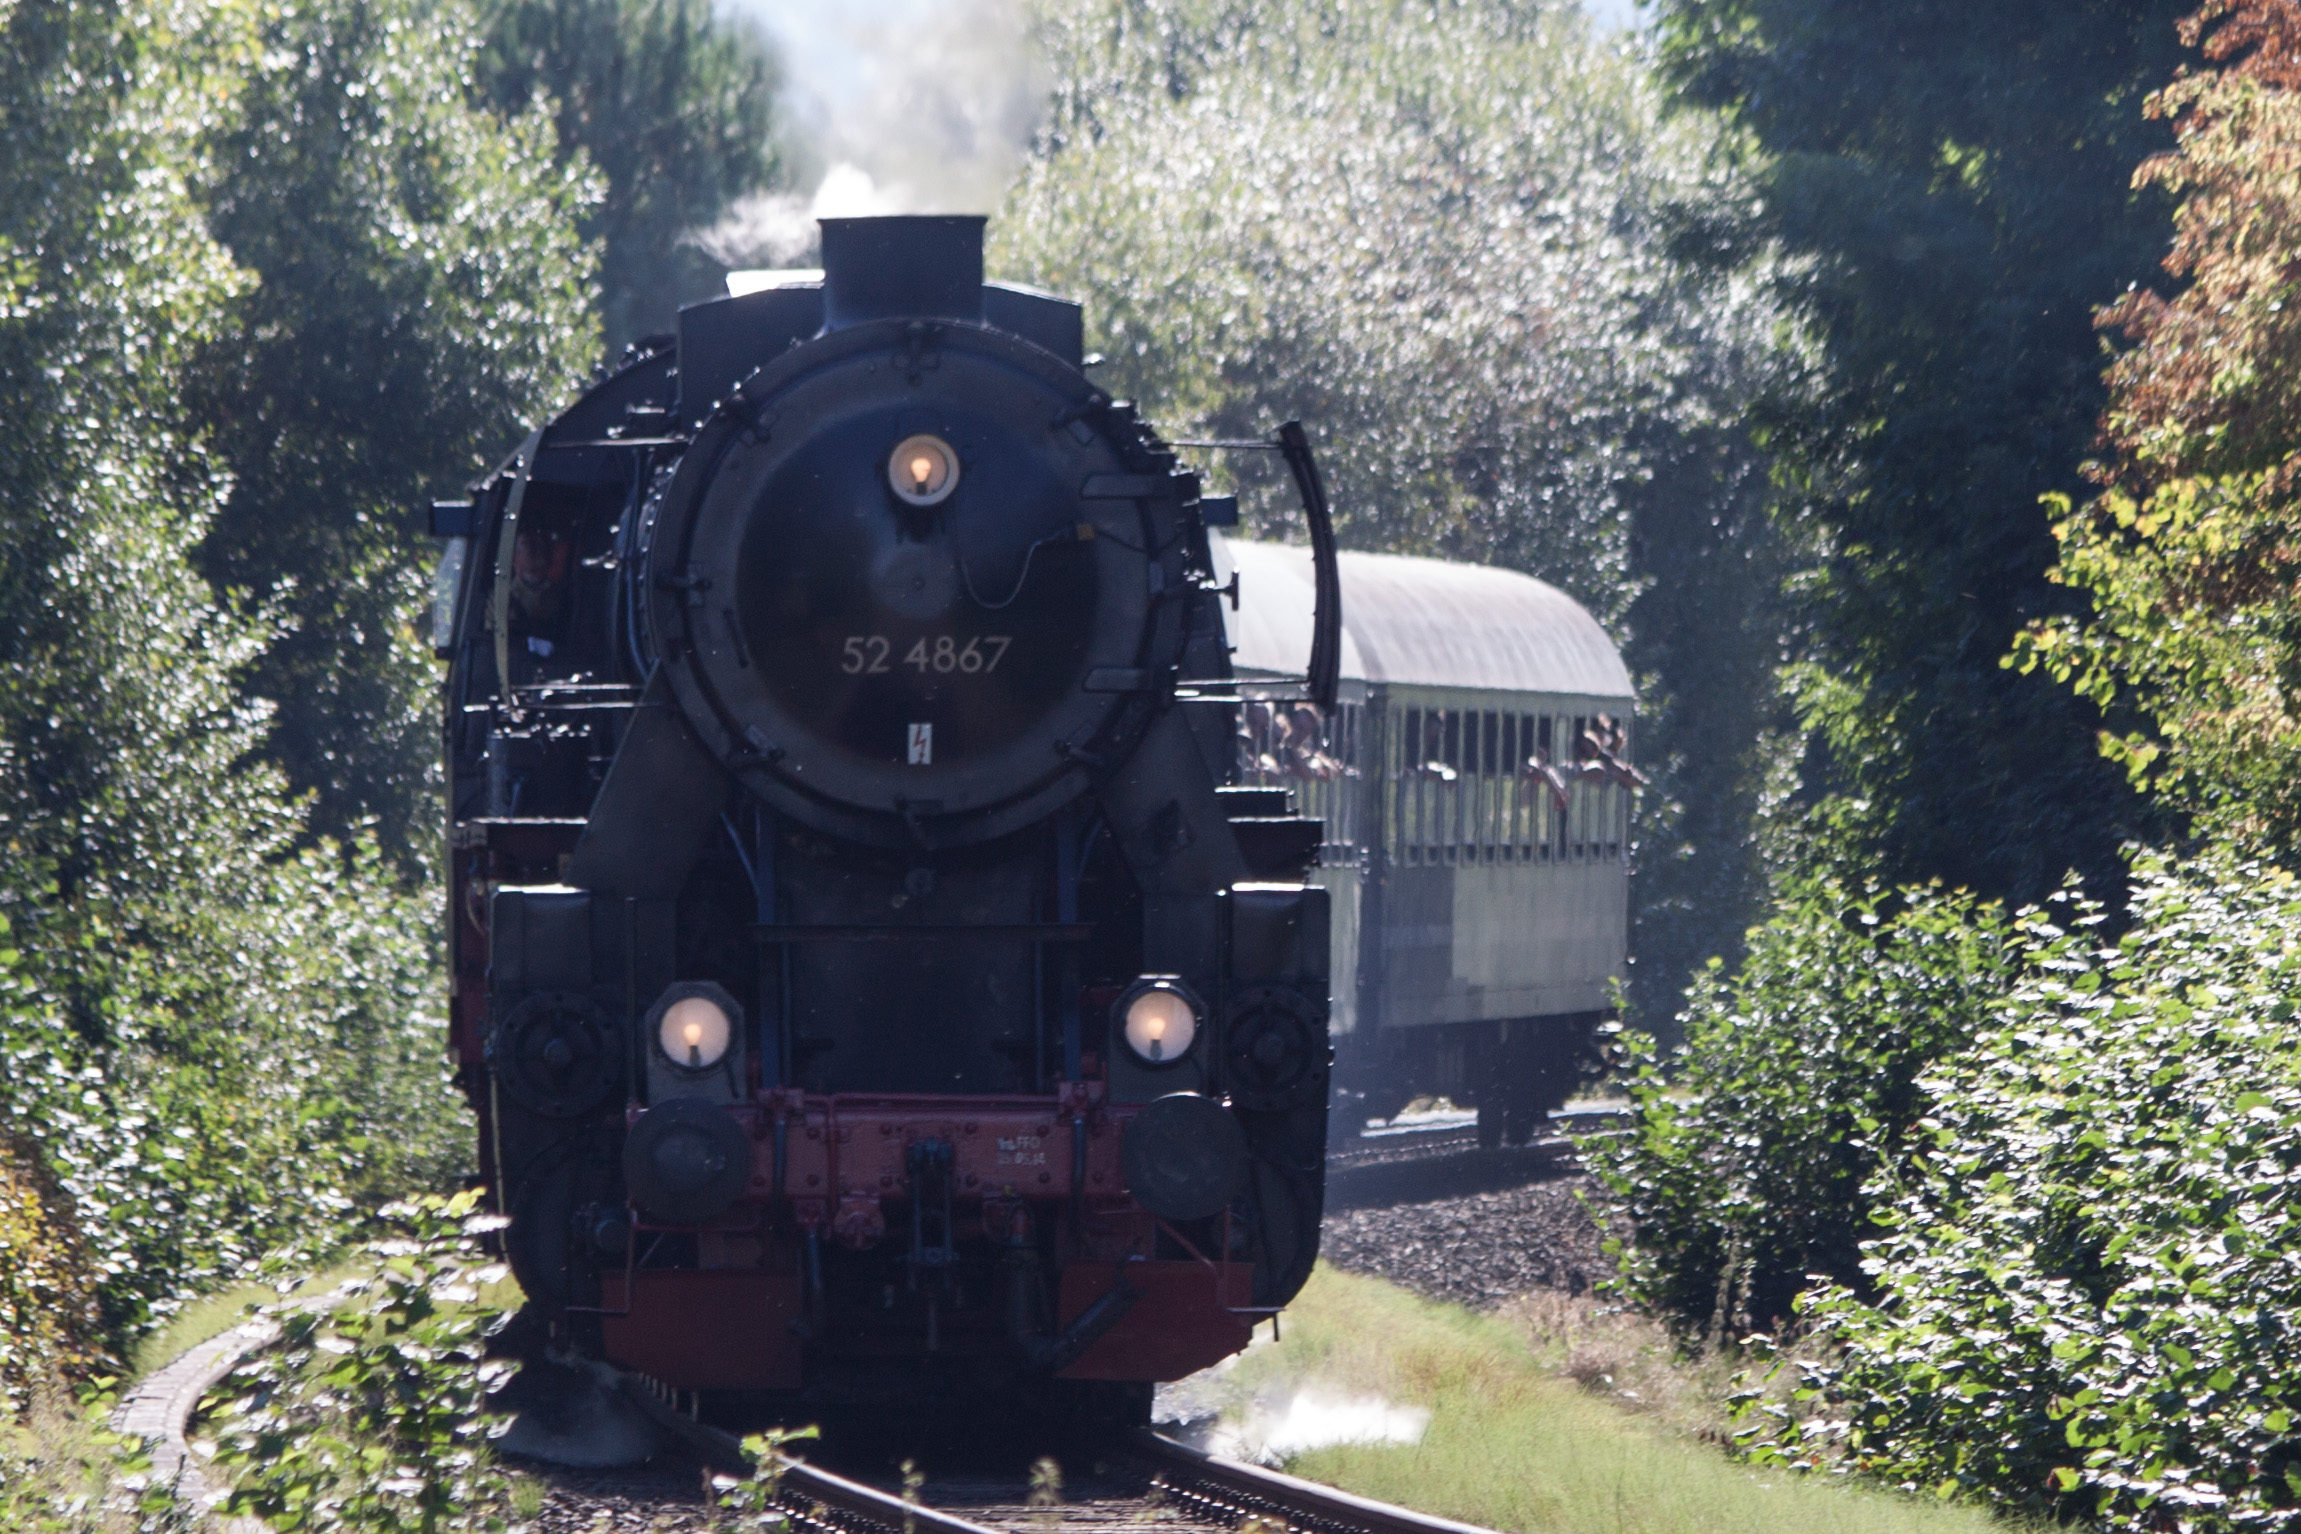 IMG_6855_c.jpg - Steam train on Taunusbahn track